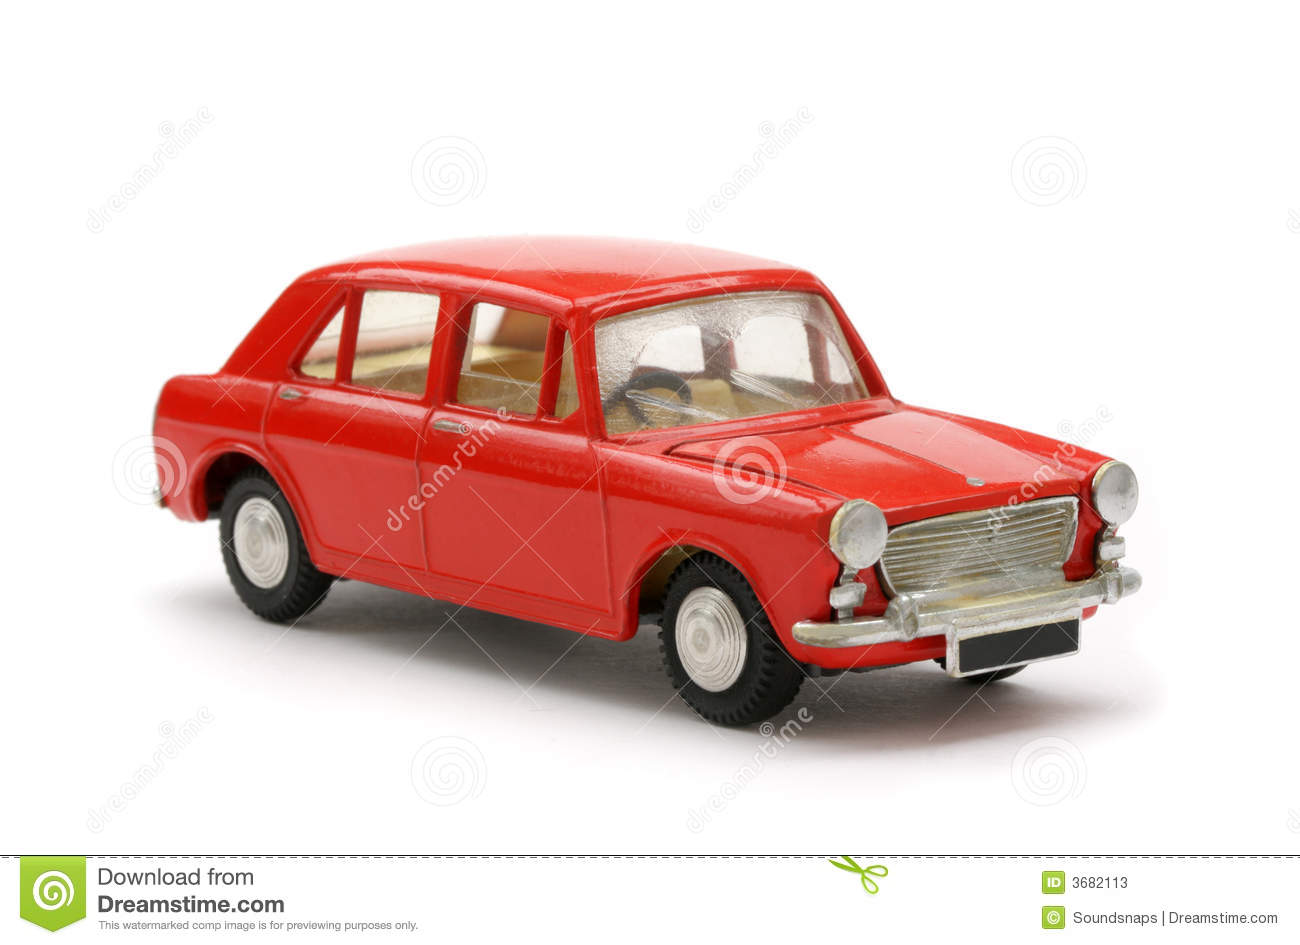 Toy Model Gallery : Red sixties british toy model car stock photos image